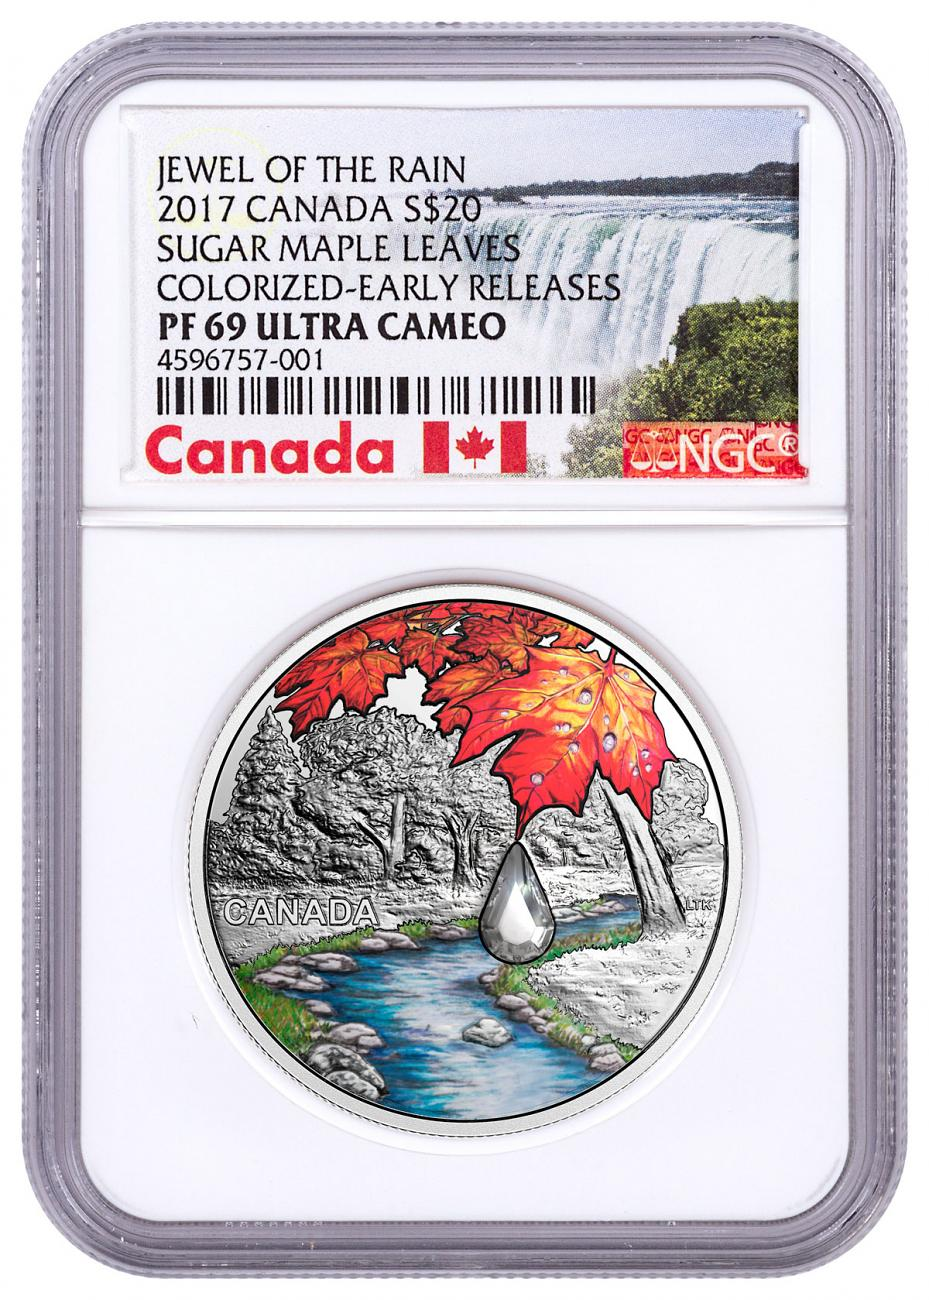 2017 Canada Jewel of the Rain - Sugar Maple Leaves with Swarovski Crystal 1 oz Silver Colorized Proof $20 Coin NGC PF69 UC ER Exclusive Canada Label